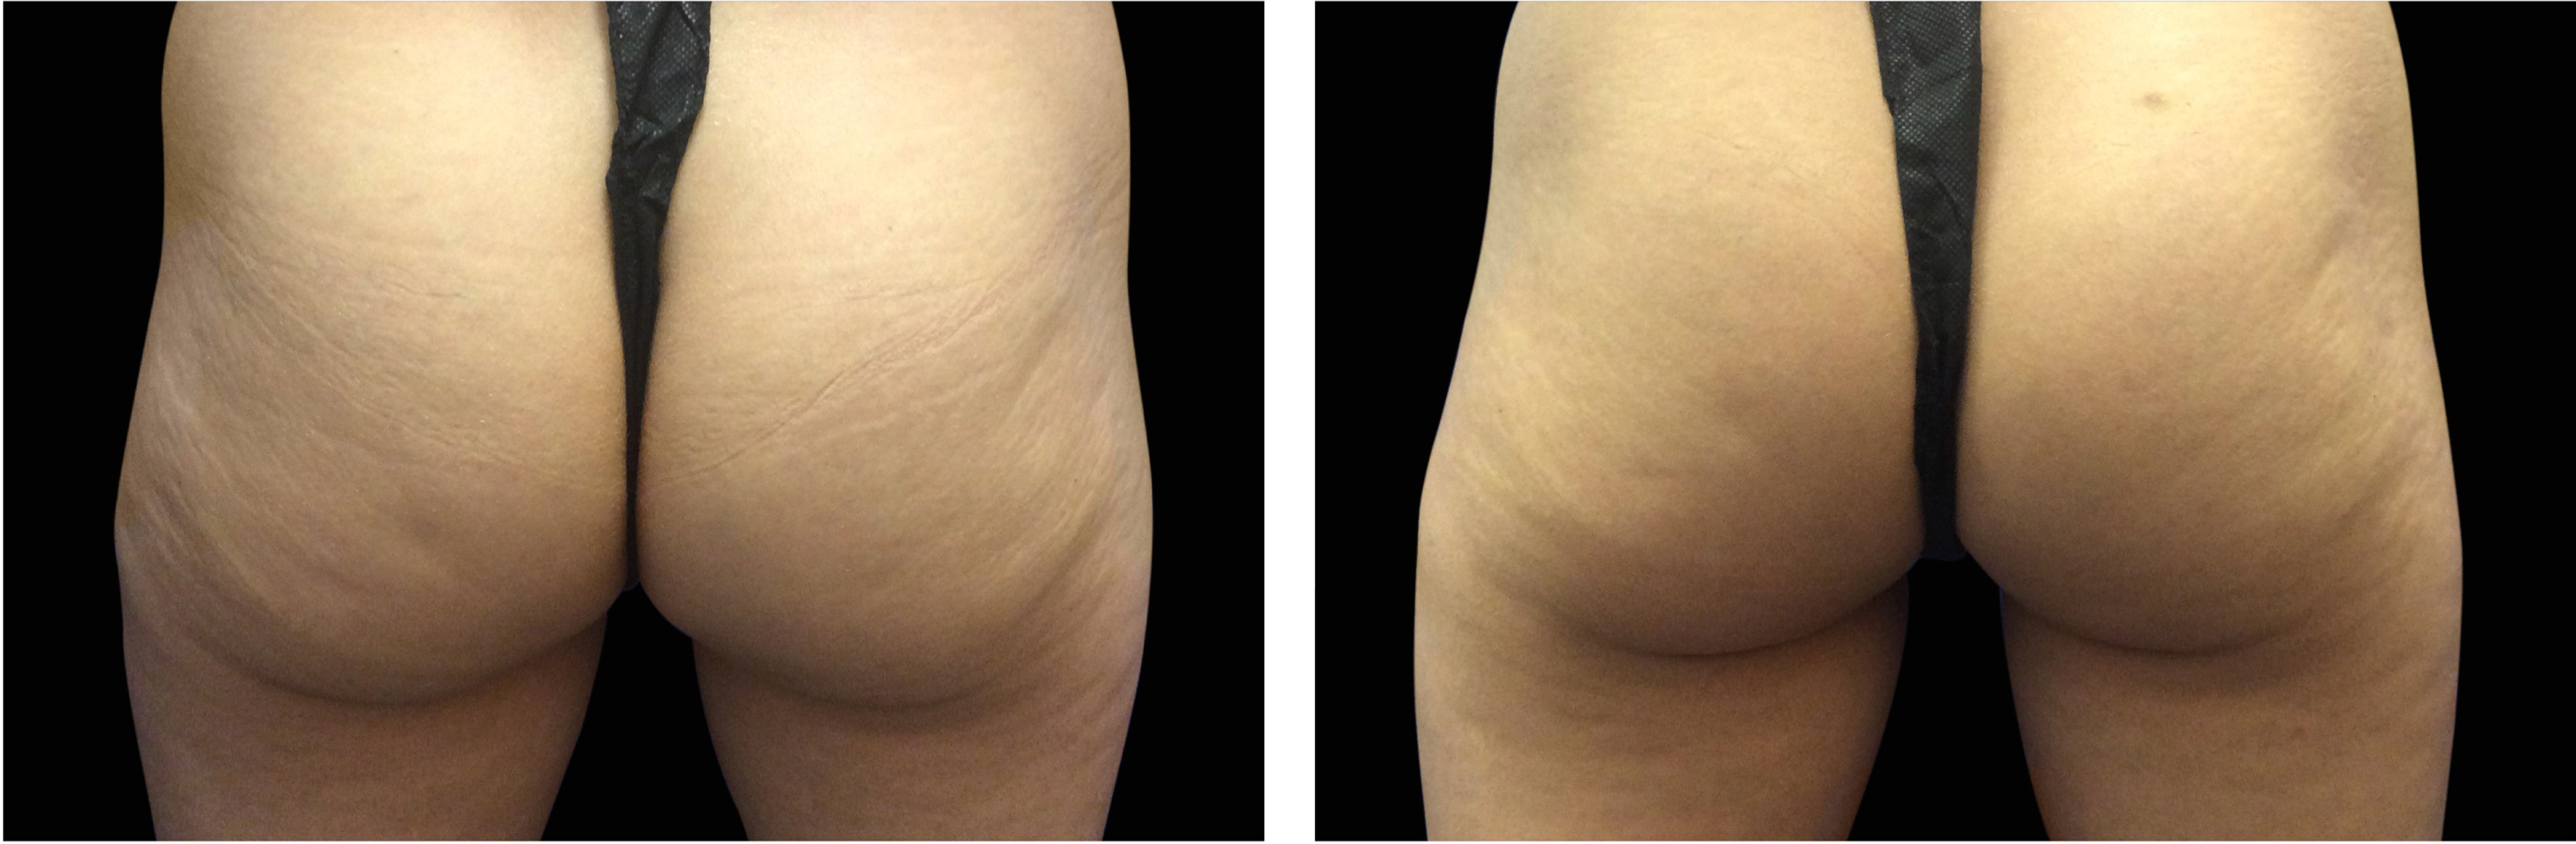 Emsculpt_Before_and_after_buttocks